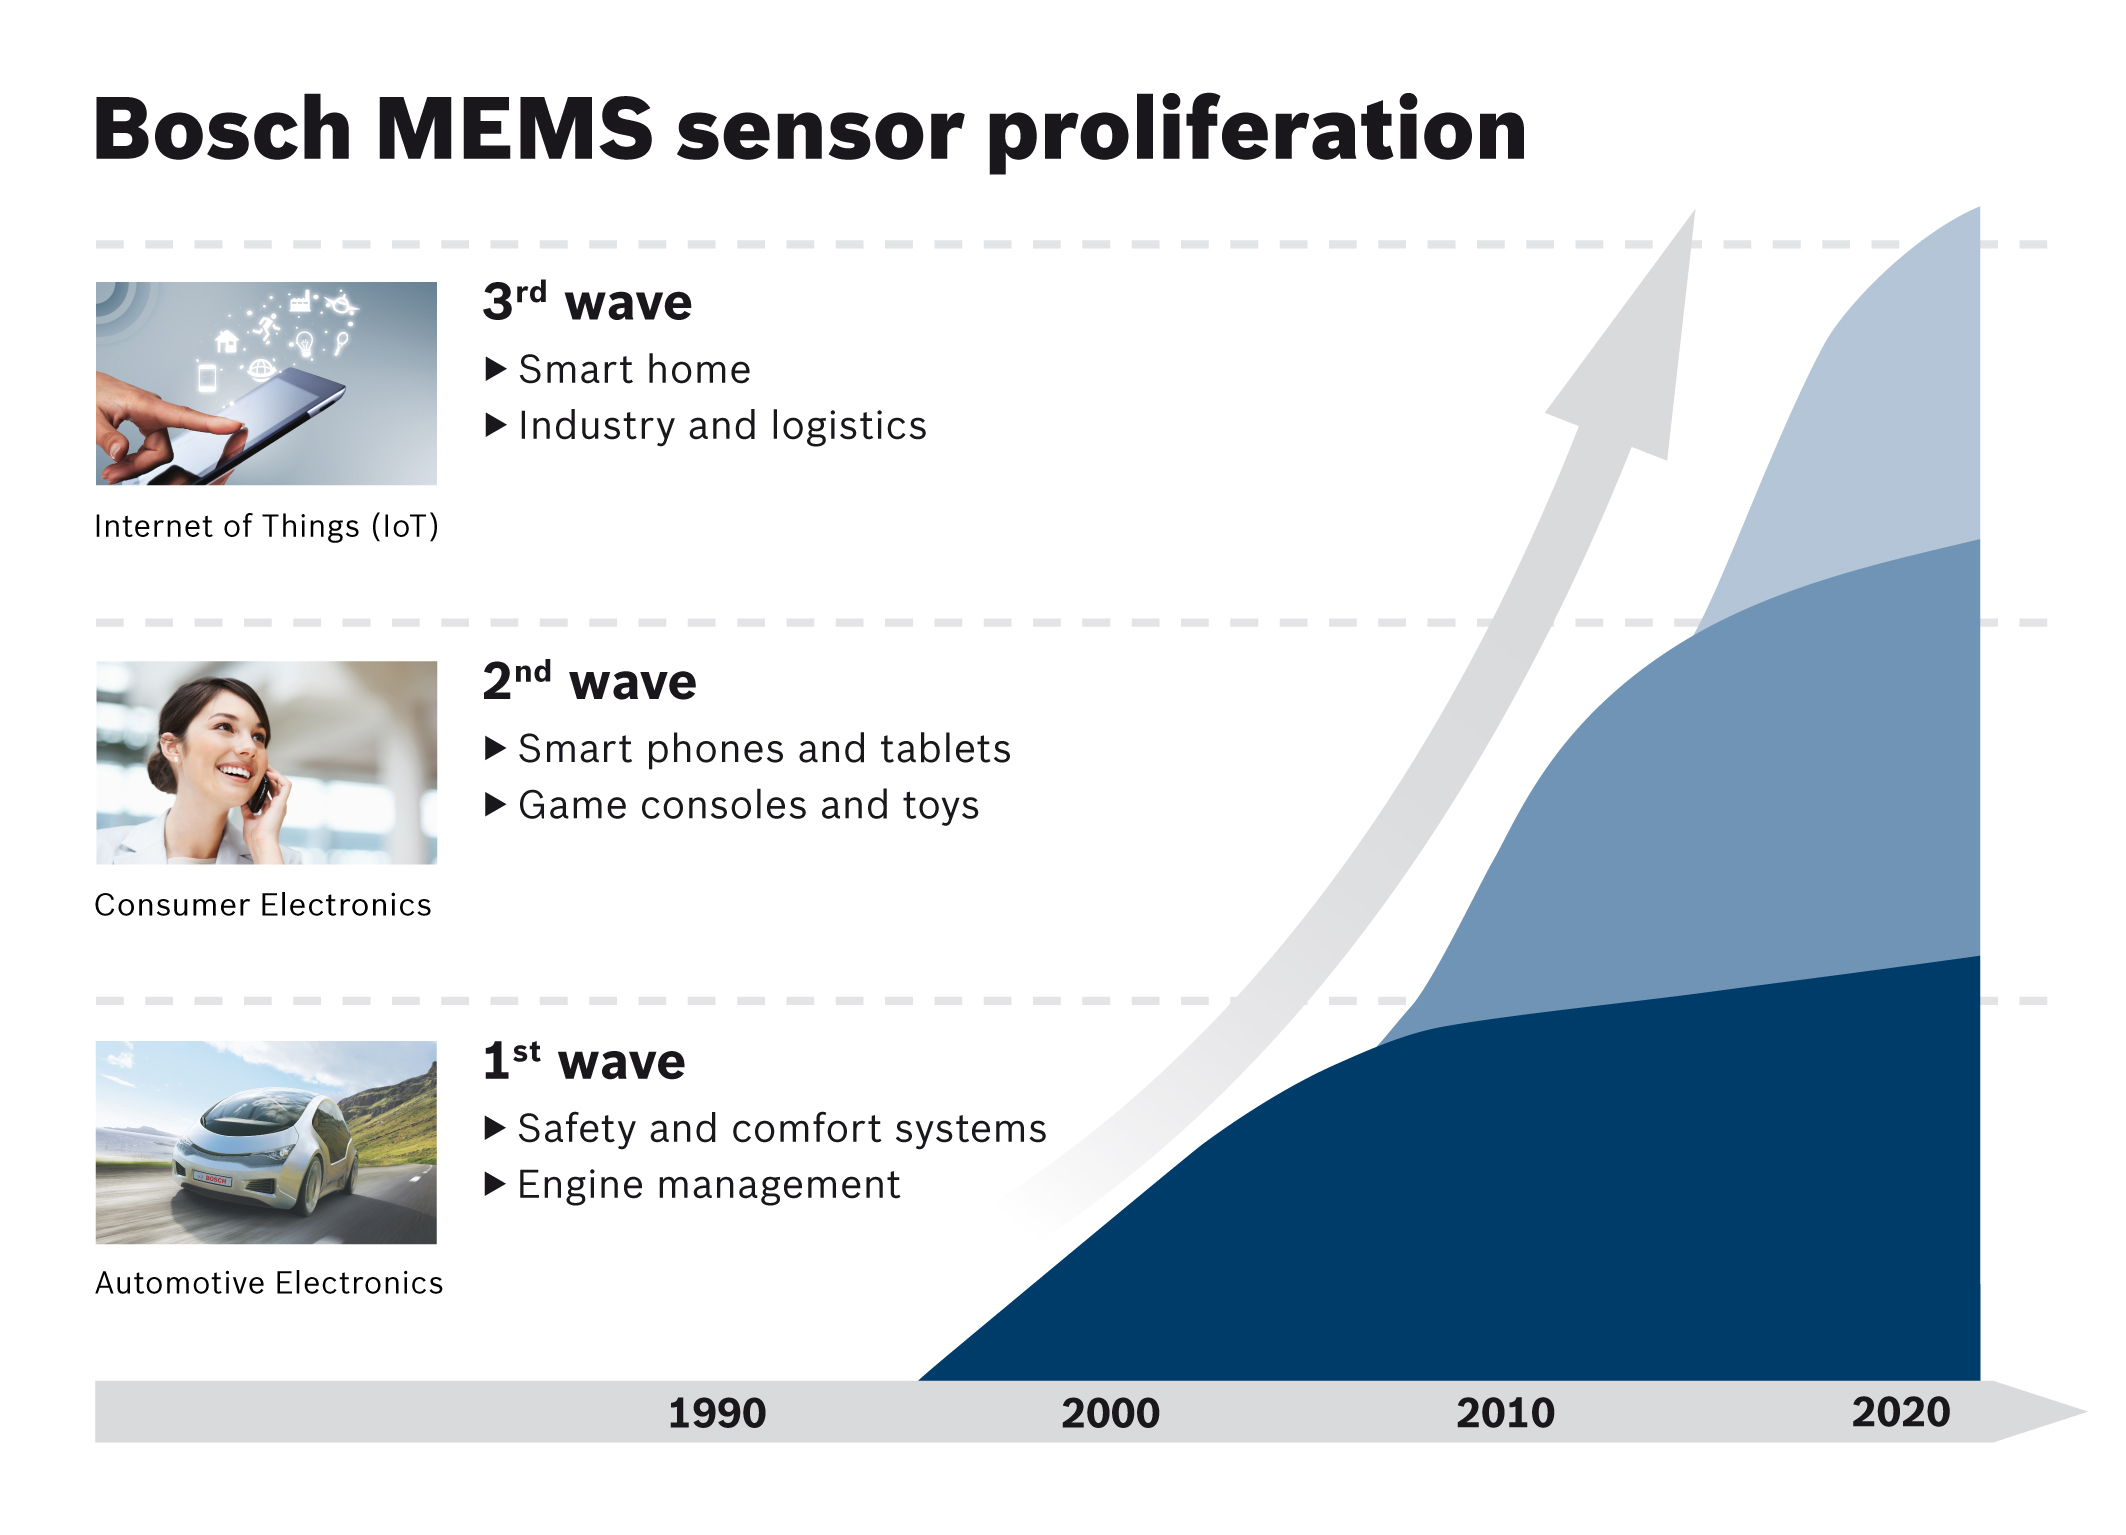 Proliferation of Bosch MEMS sensors